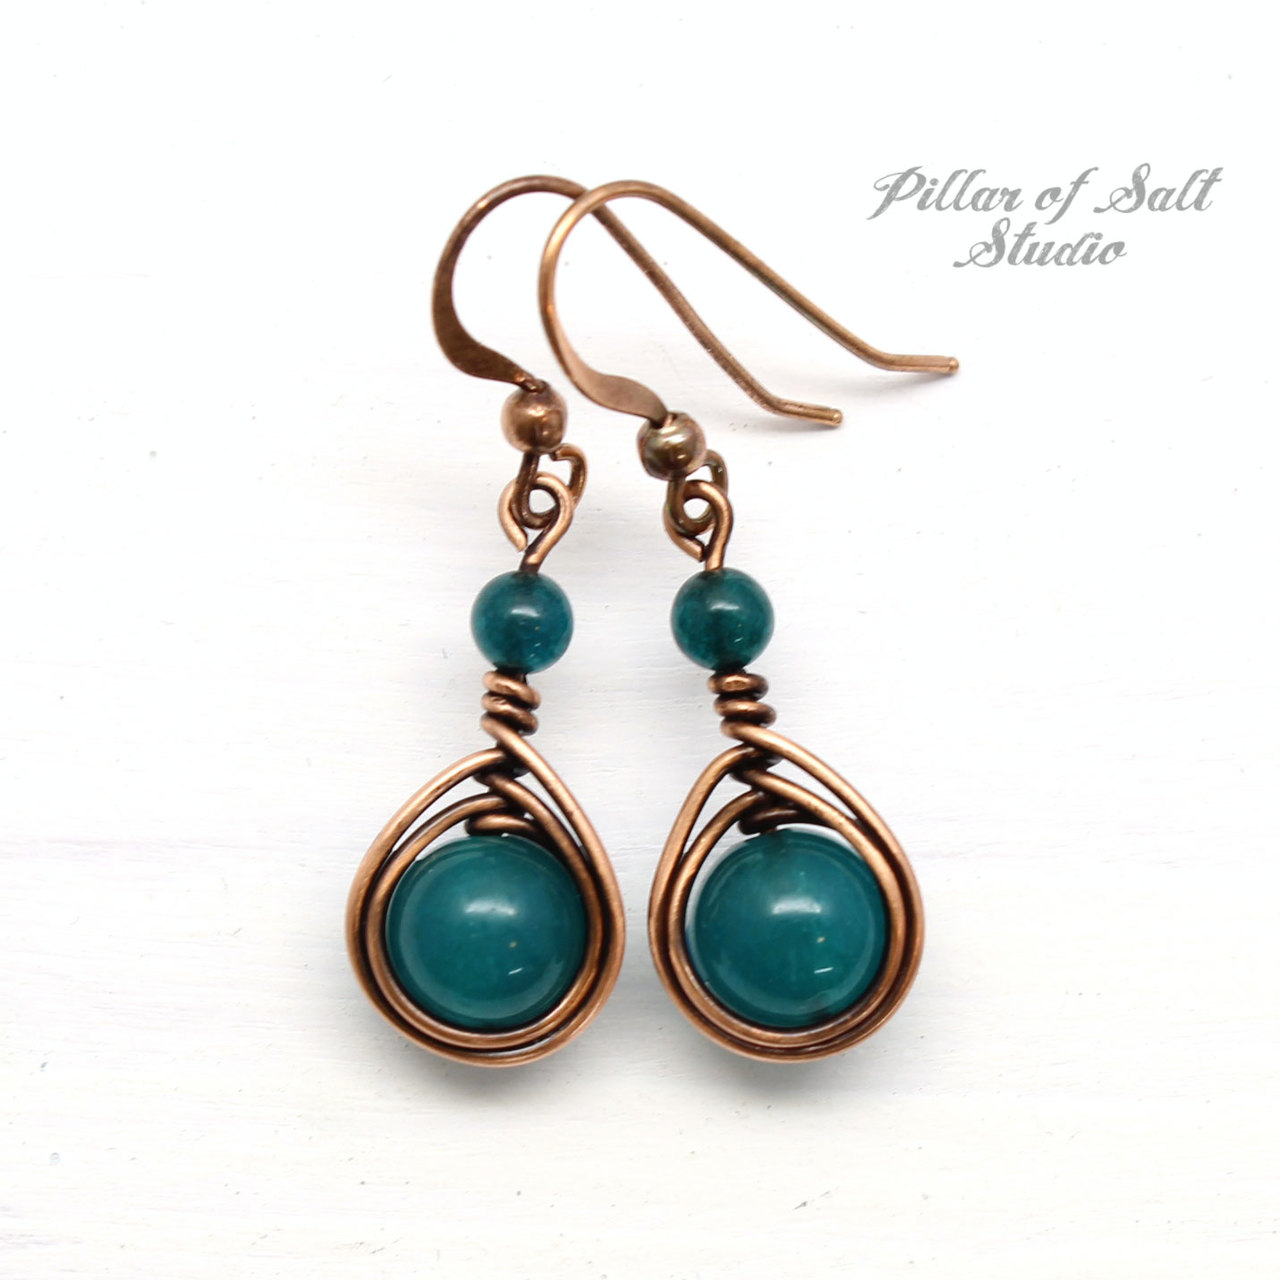 Peacock green quartz earrings by Pillar of Salt Studio